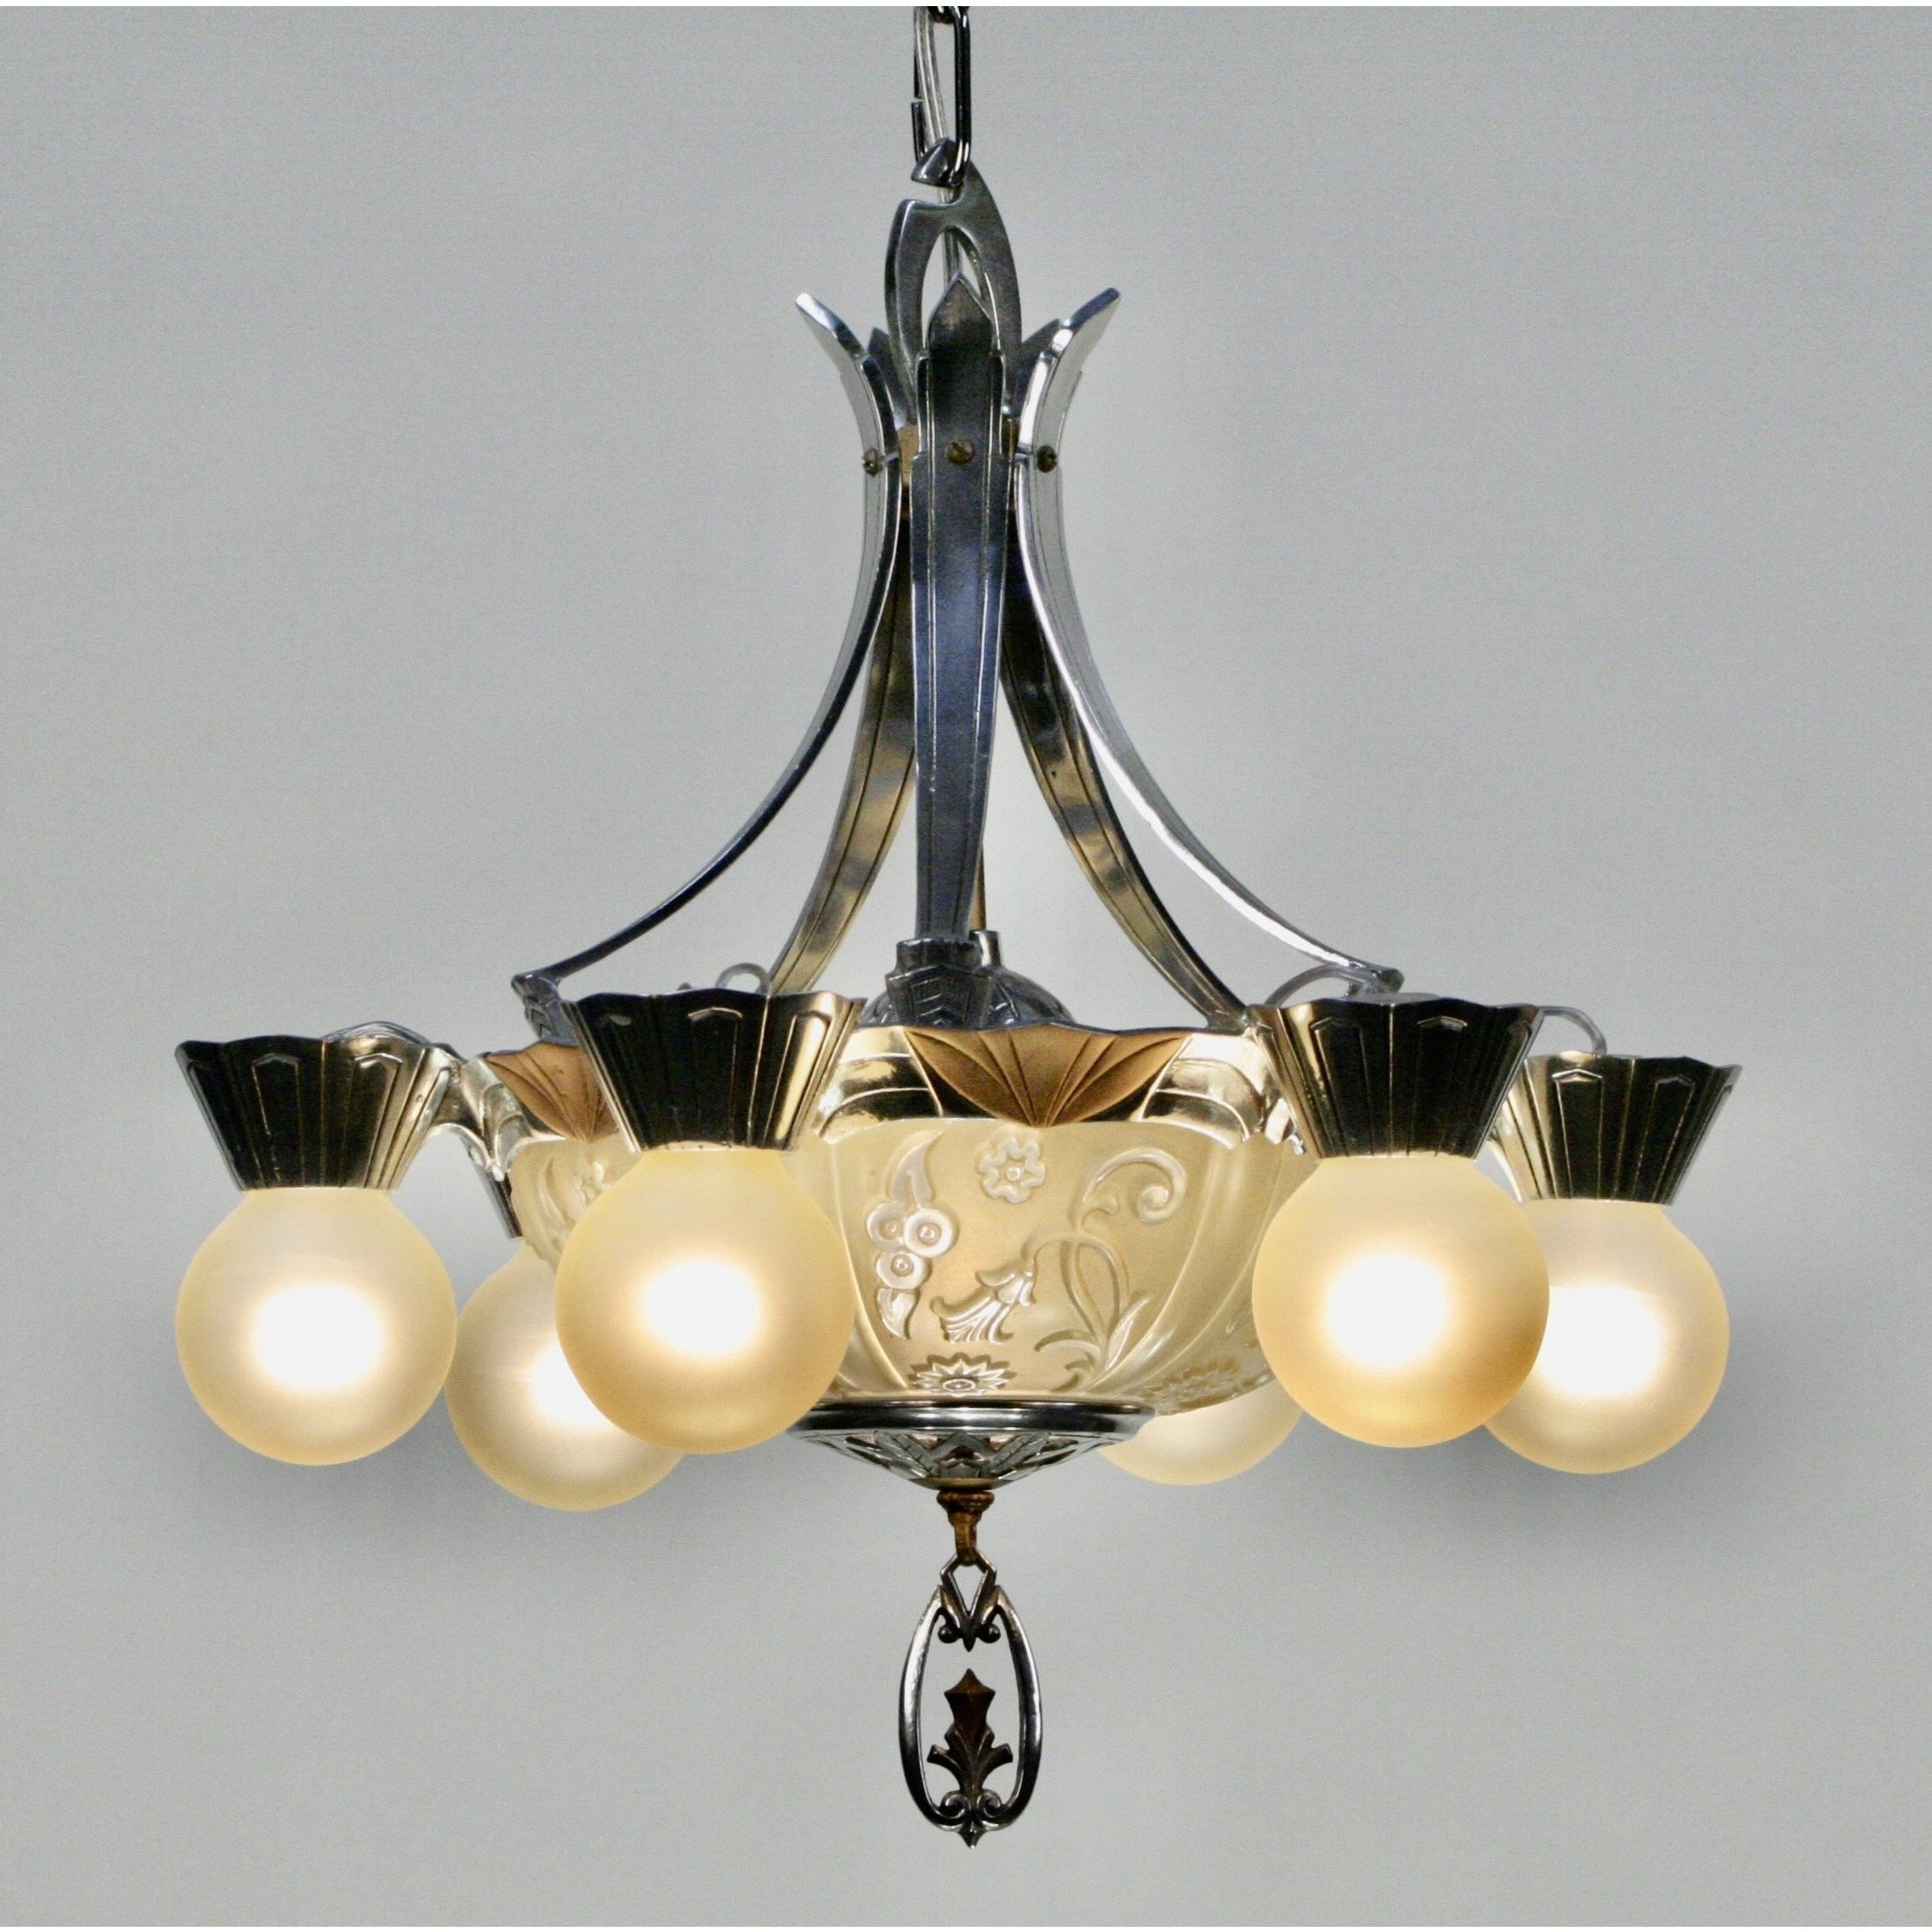 polished aluminum art deco chandelier with glass bowl bottom